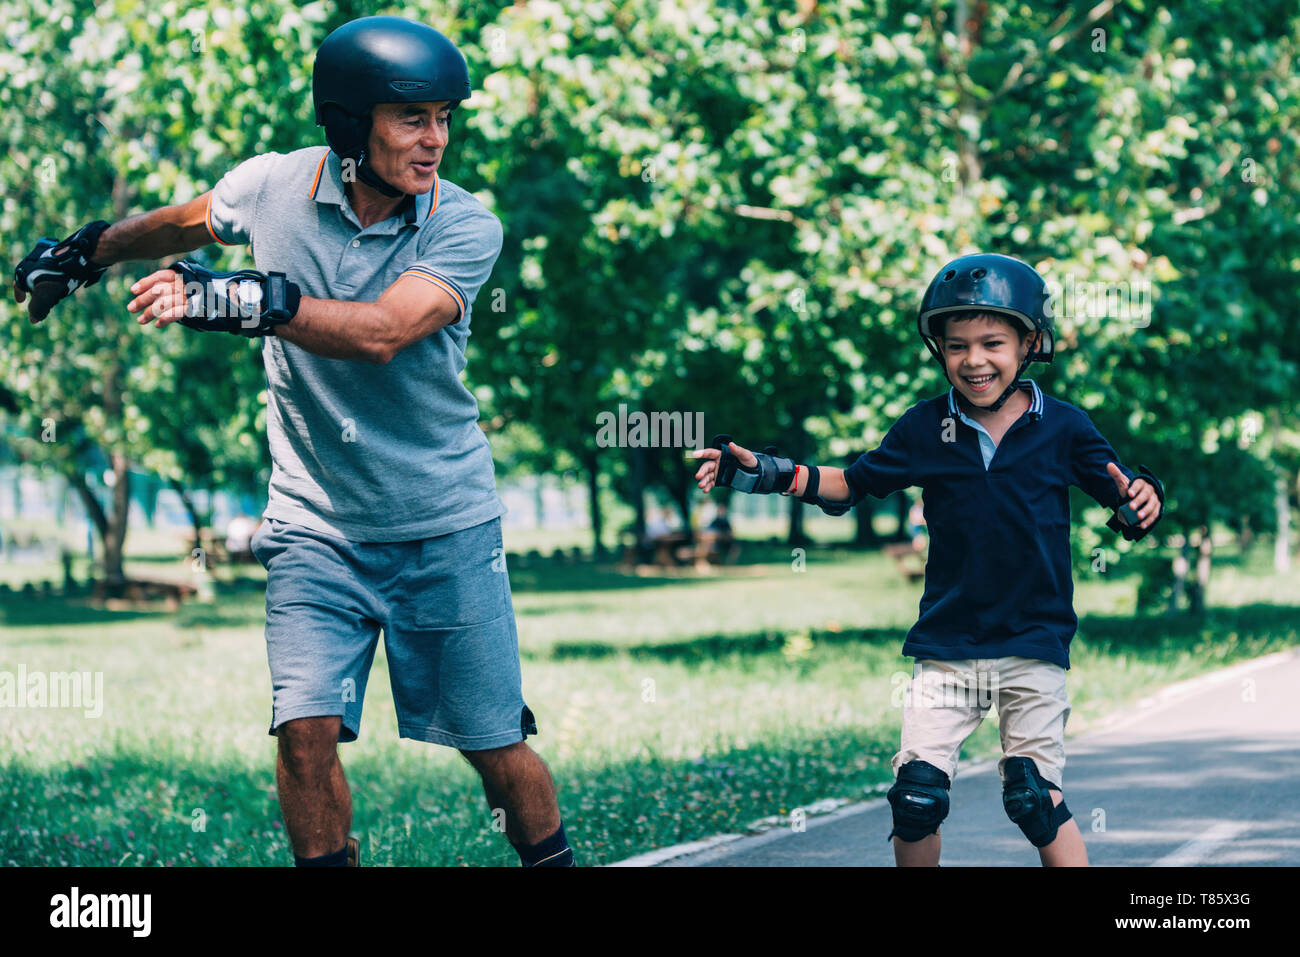 Grandfather and grandson roller skating Stock Photo